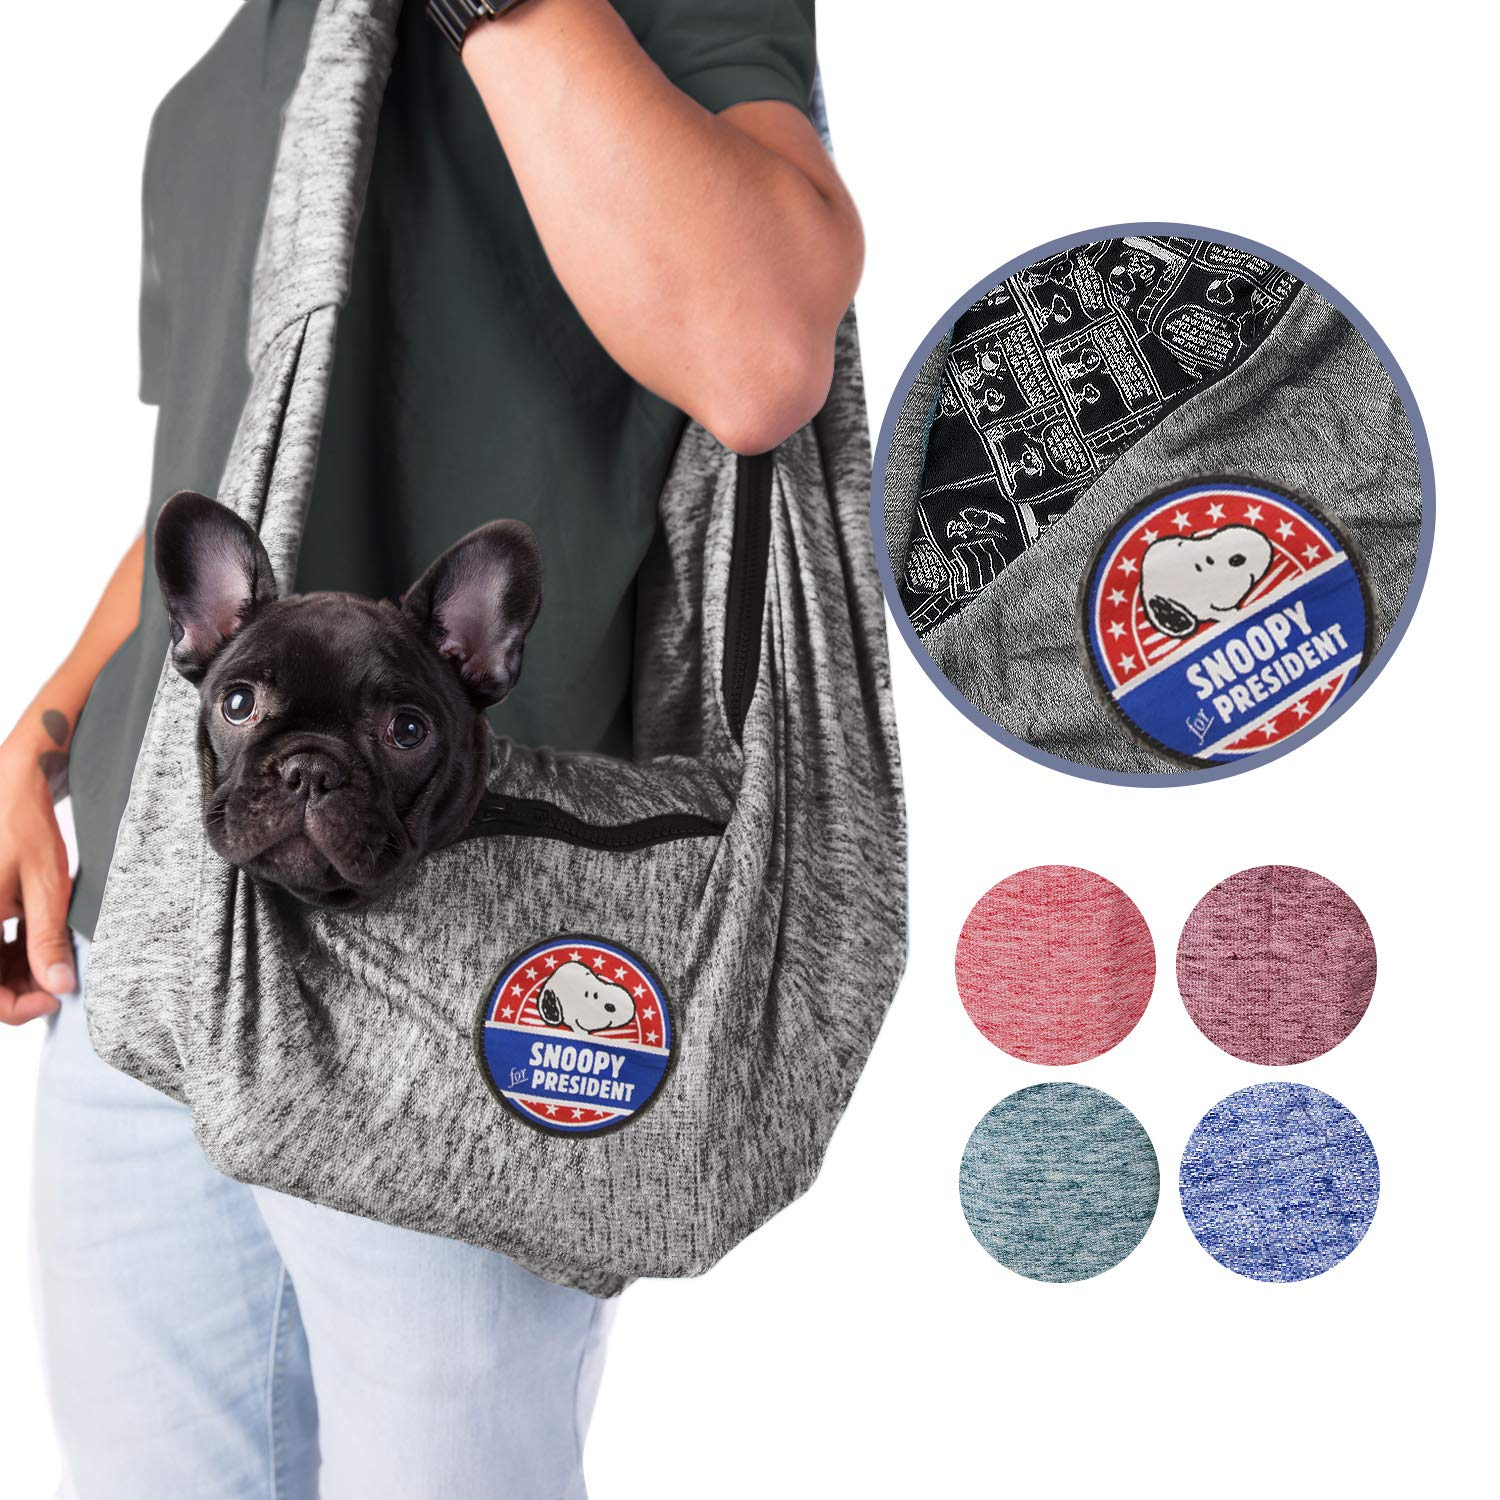 Graphite Zoozpets Peanuts Dog Sling   Carrier Snoopy Soft Pouch & Comfy Strap Dog Carrier   Exclusive Bag Design for Puppy, Small Dogs, Cat & Pets   Enjoy Your Charlie Brown Pet Sling Everywhere You Go